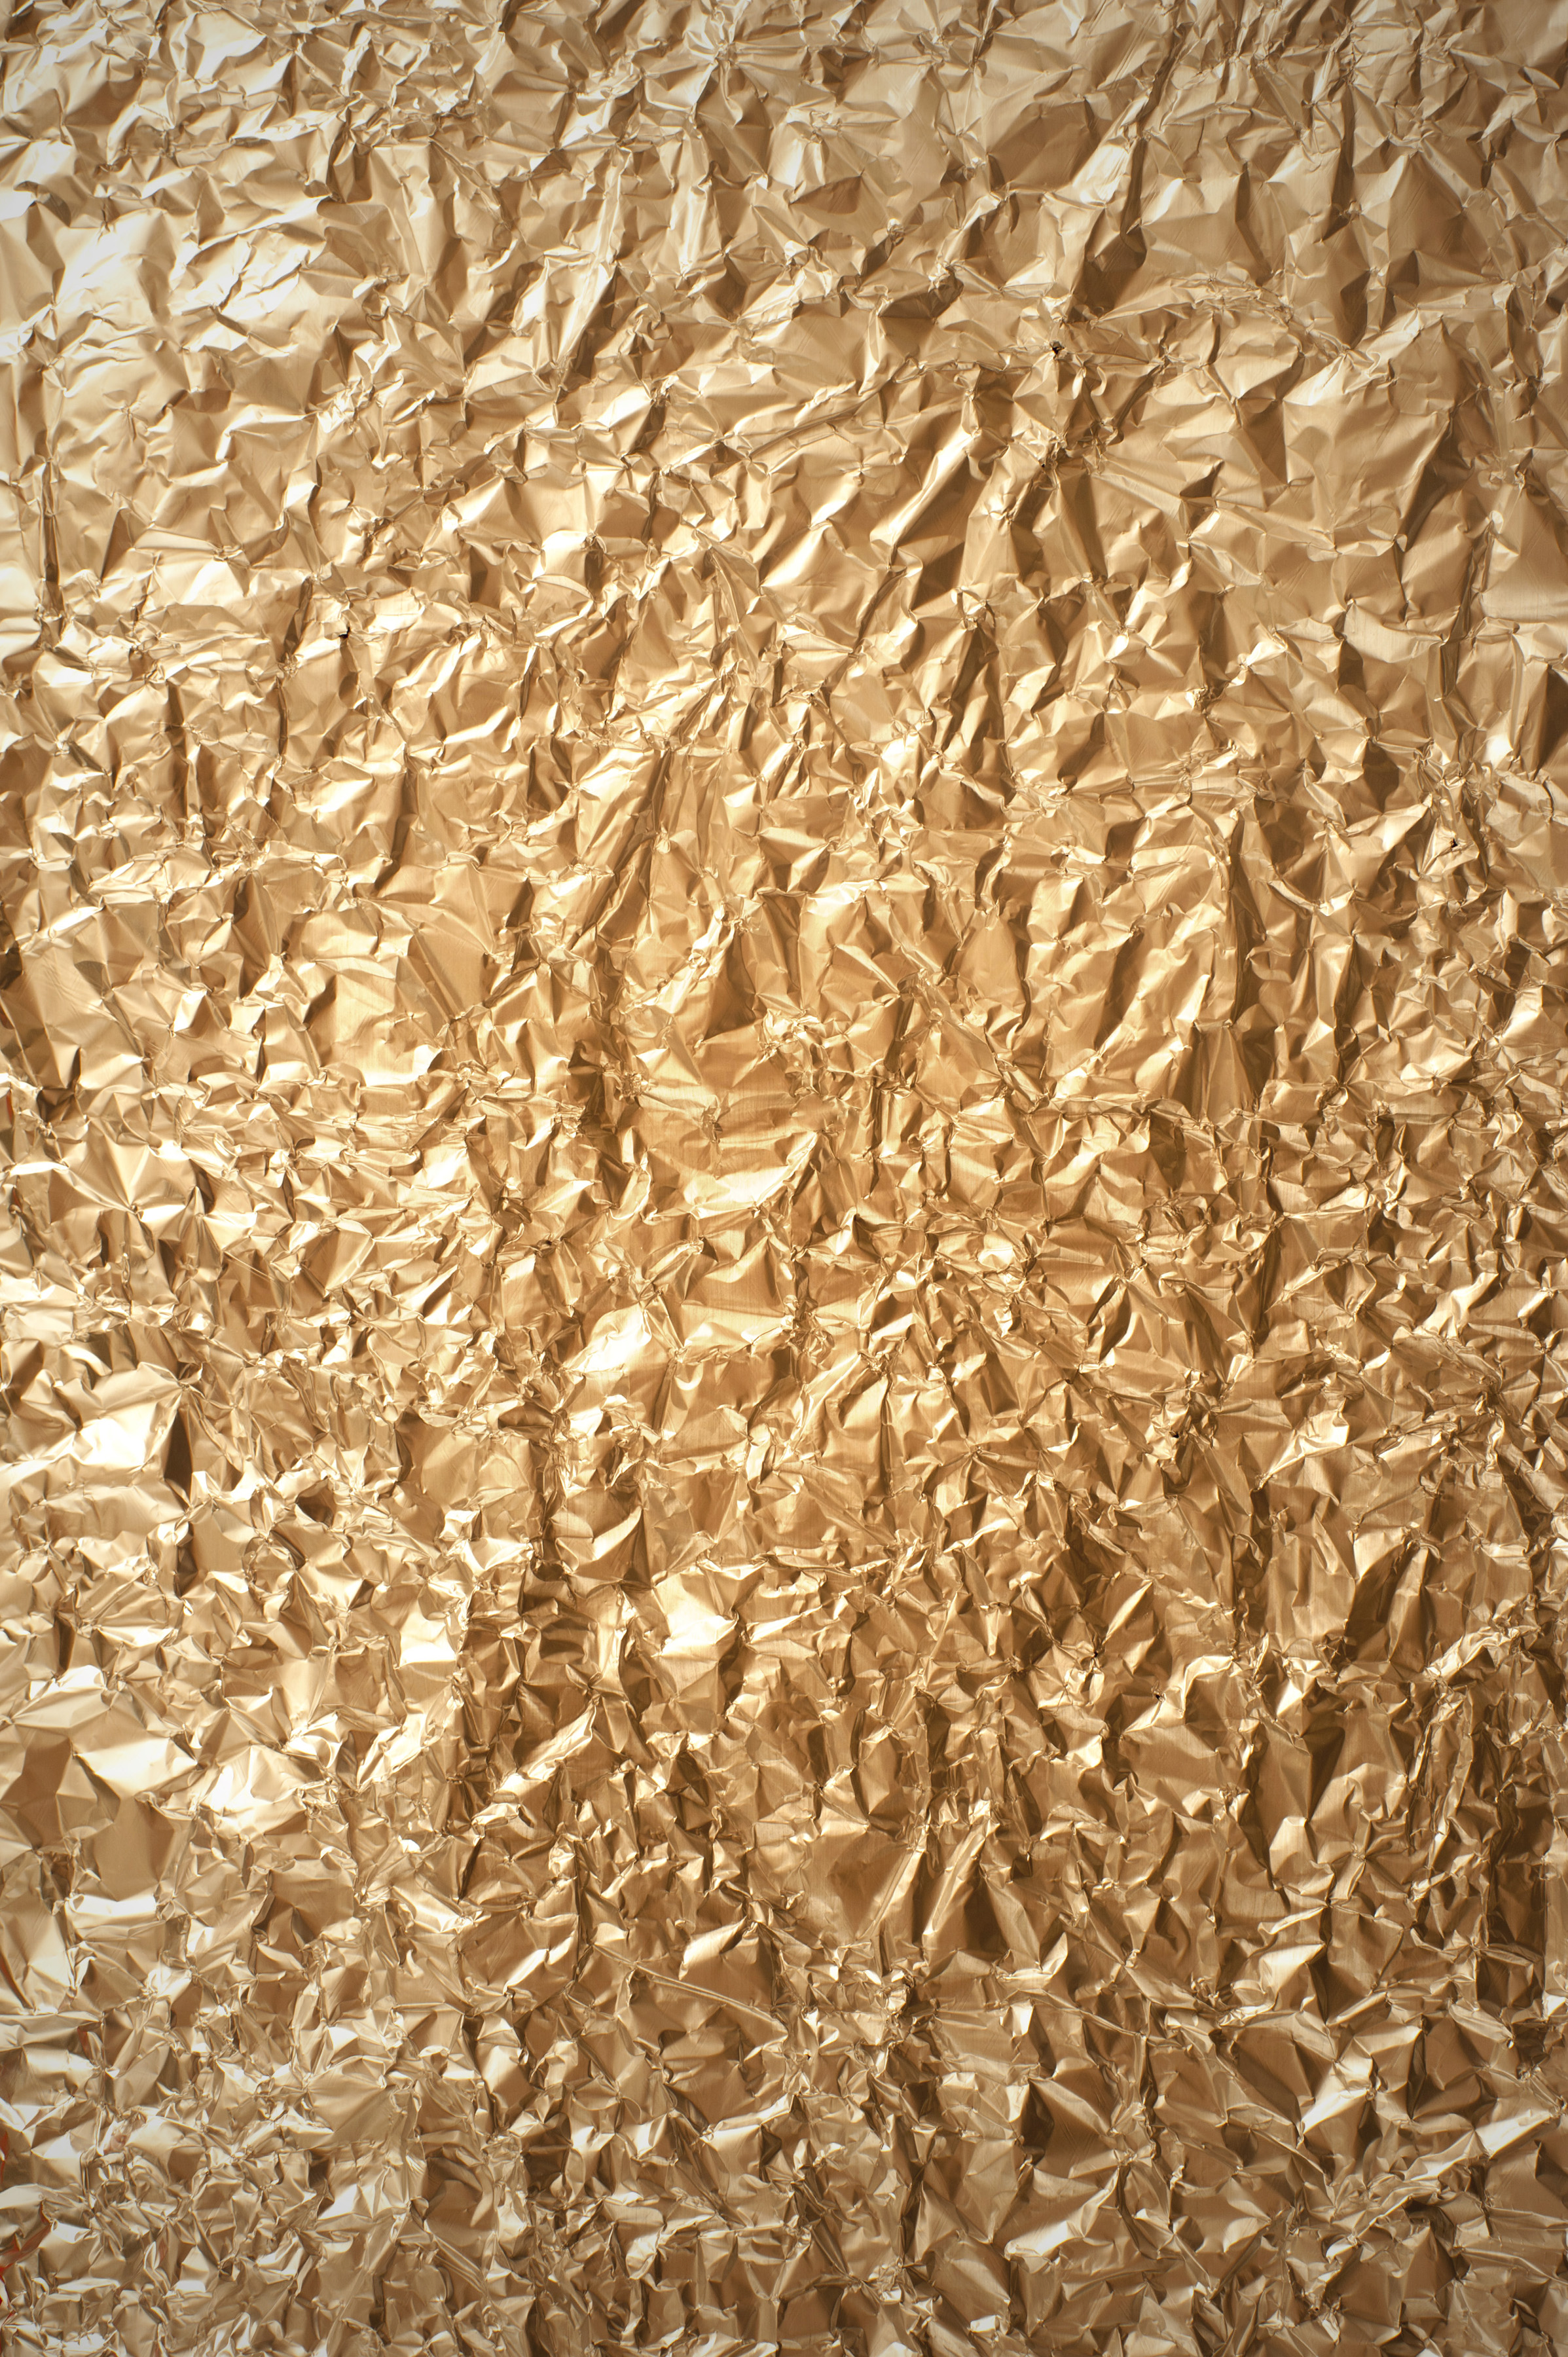 Full Frame of Crumpled Gold Foil, Abstract Background of Shiny Metallic Wrinkled Golden Paper